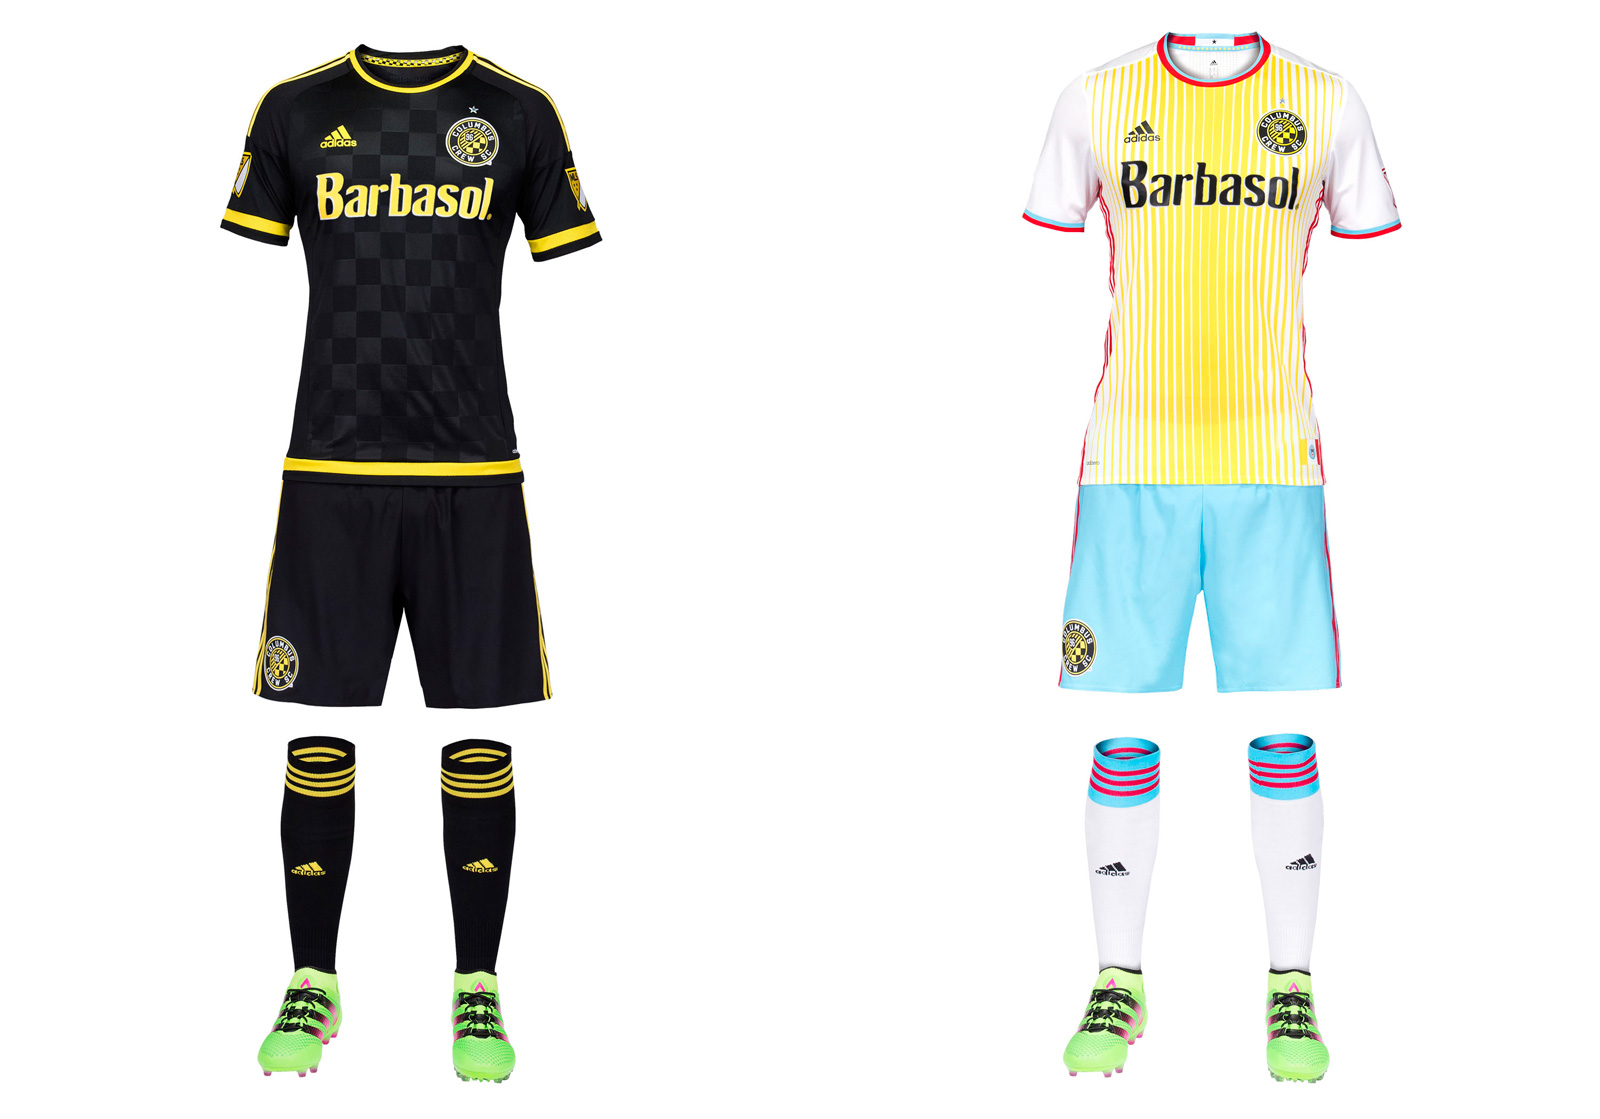 "Once known as ""America's Hardest Working Team,"" Crew SC is trying too hard. For 17 years, Columbus was the only club in MLS, and one of the few in the world, to wear all-yellow. It was immediately recognizable, looked great on the field and was a genuine brand. Now it's gone, replaced as the primary by last year's away set. Mono-black is more closely associated with D.C. United. The new secondary is a shock to the system. Designed to reflect the yellow, white and red city flag, it's certainly distinctive. Clubs are welcome to take chances with their away kits, but only if the overall brand holds steady."